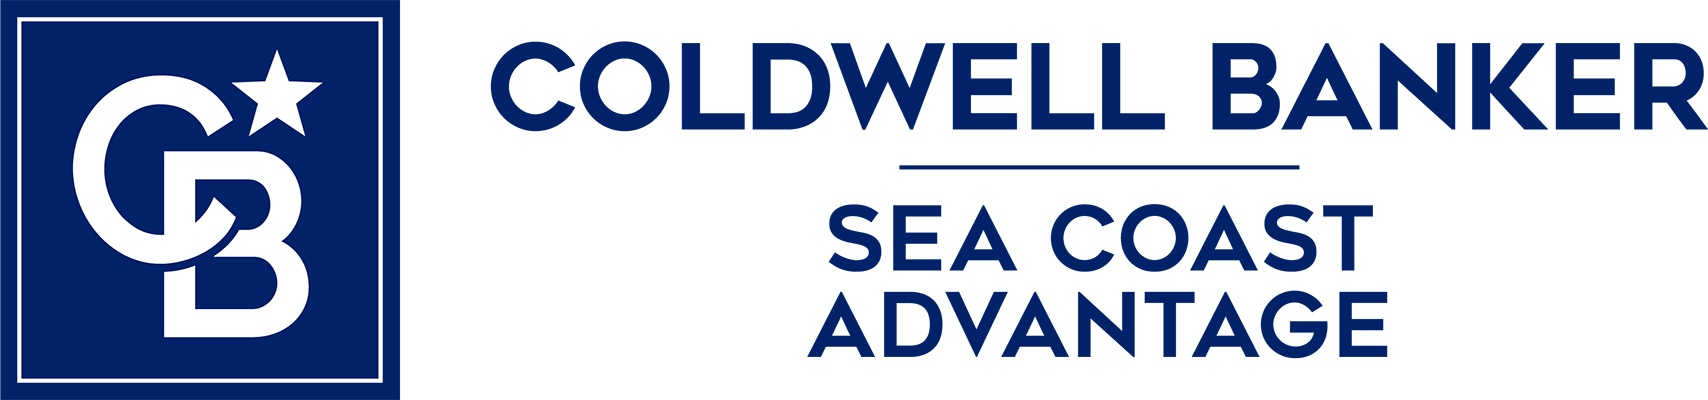 Andres Campillo - Coldwell Banker Sea Coast Advantage Realty